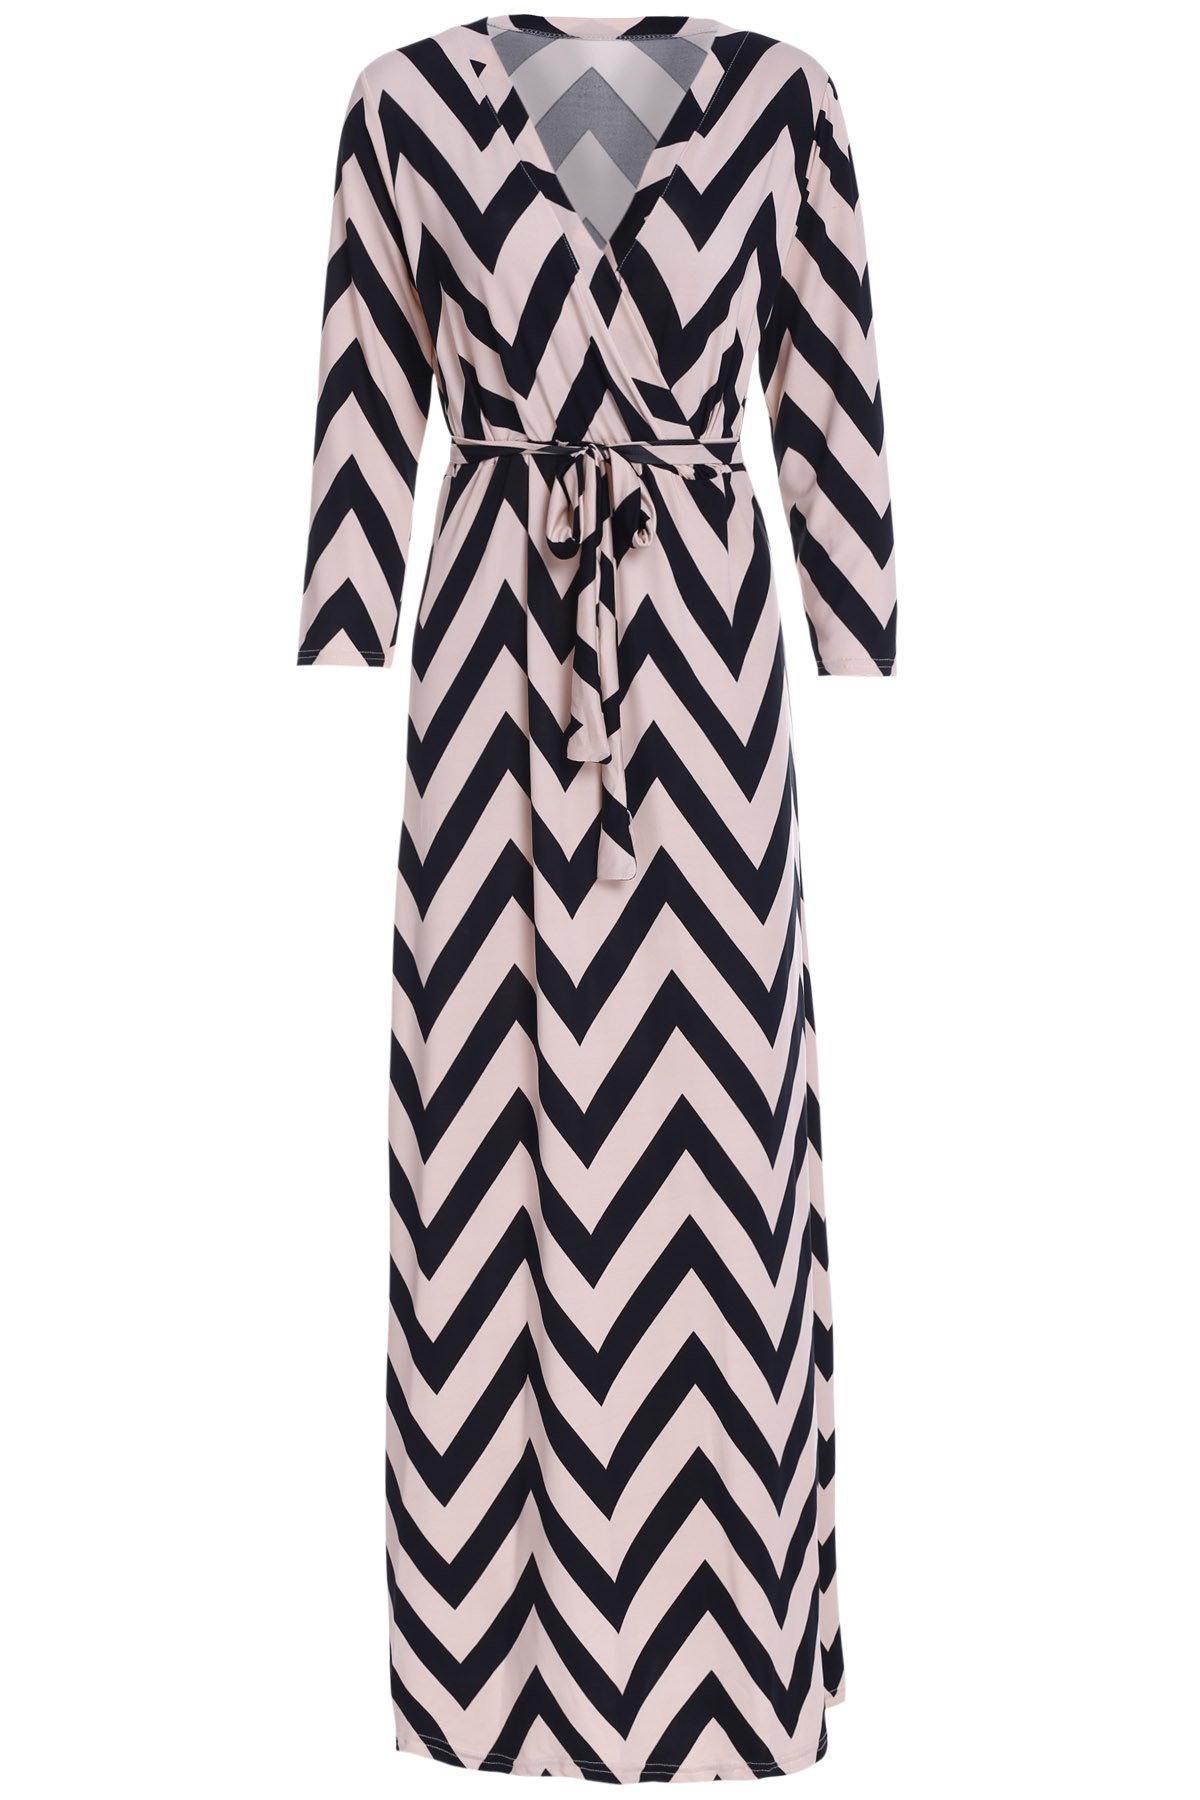 Sexy 3/4 Sleeve Plunging Neck Wave Printed Women's Maxi Dress - BLACK S